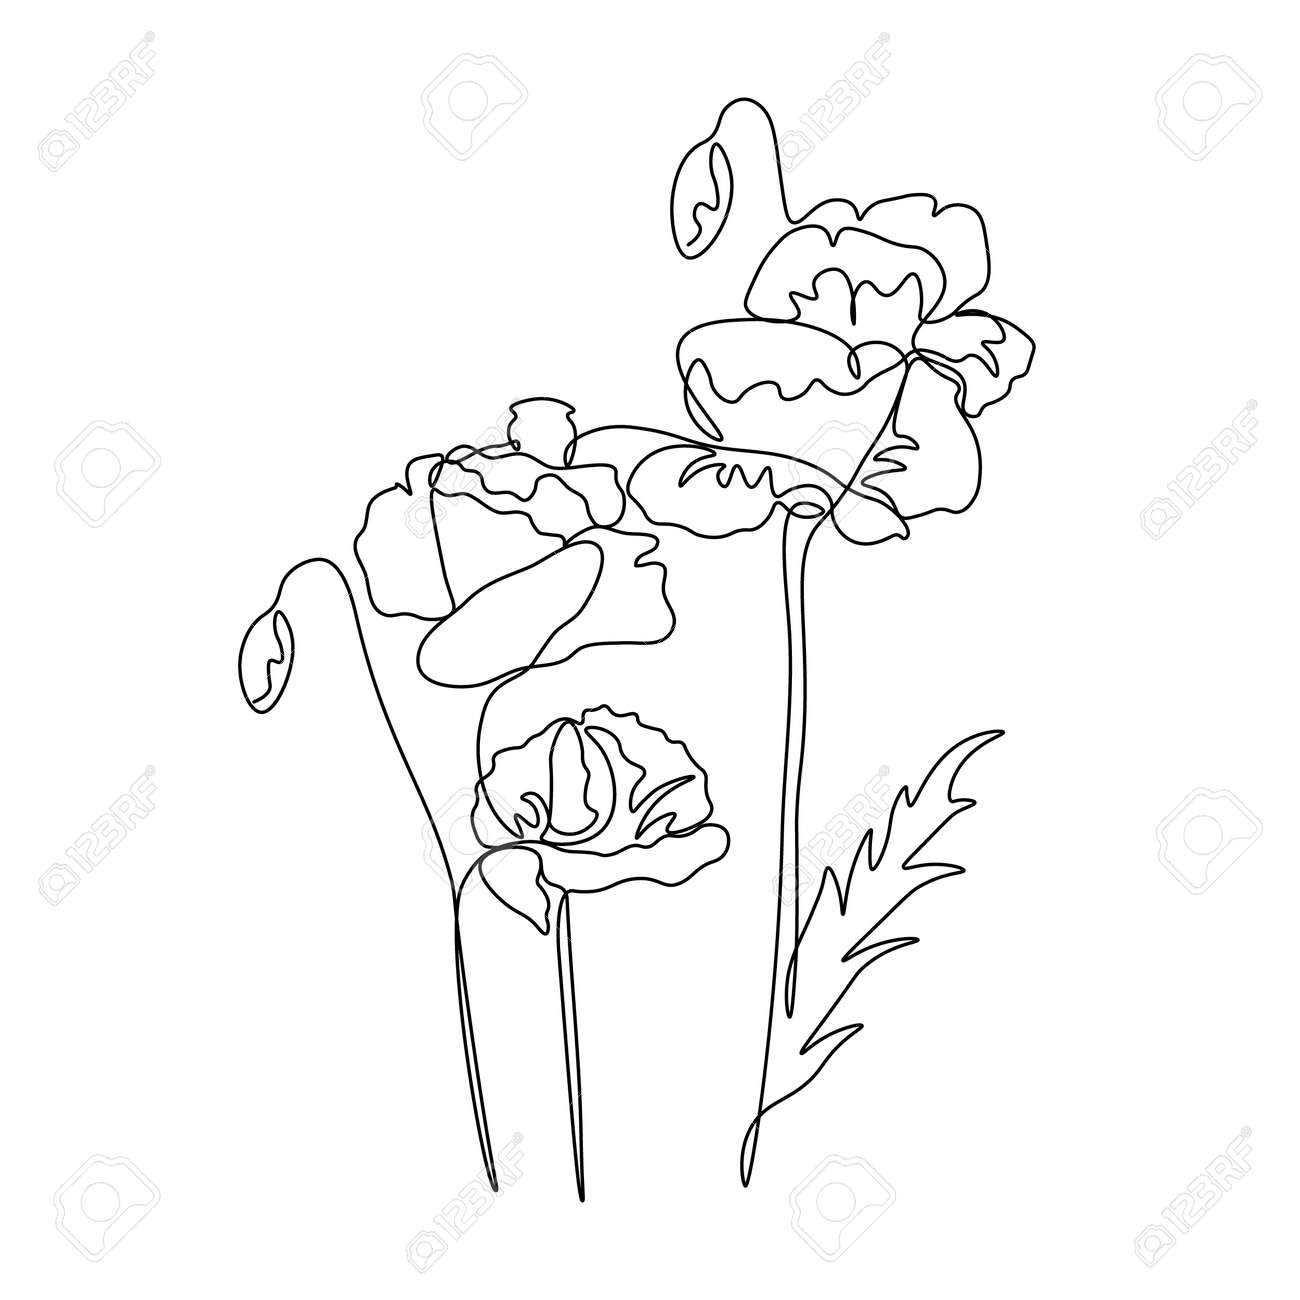 Poppy One Line Drawing. Continuous Line Flower. Hand drawn ...